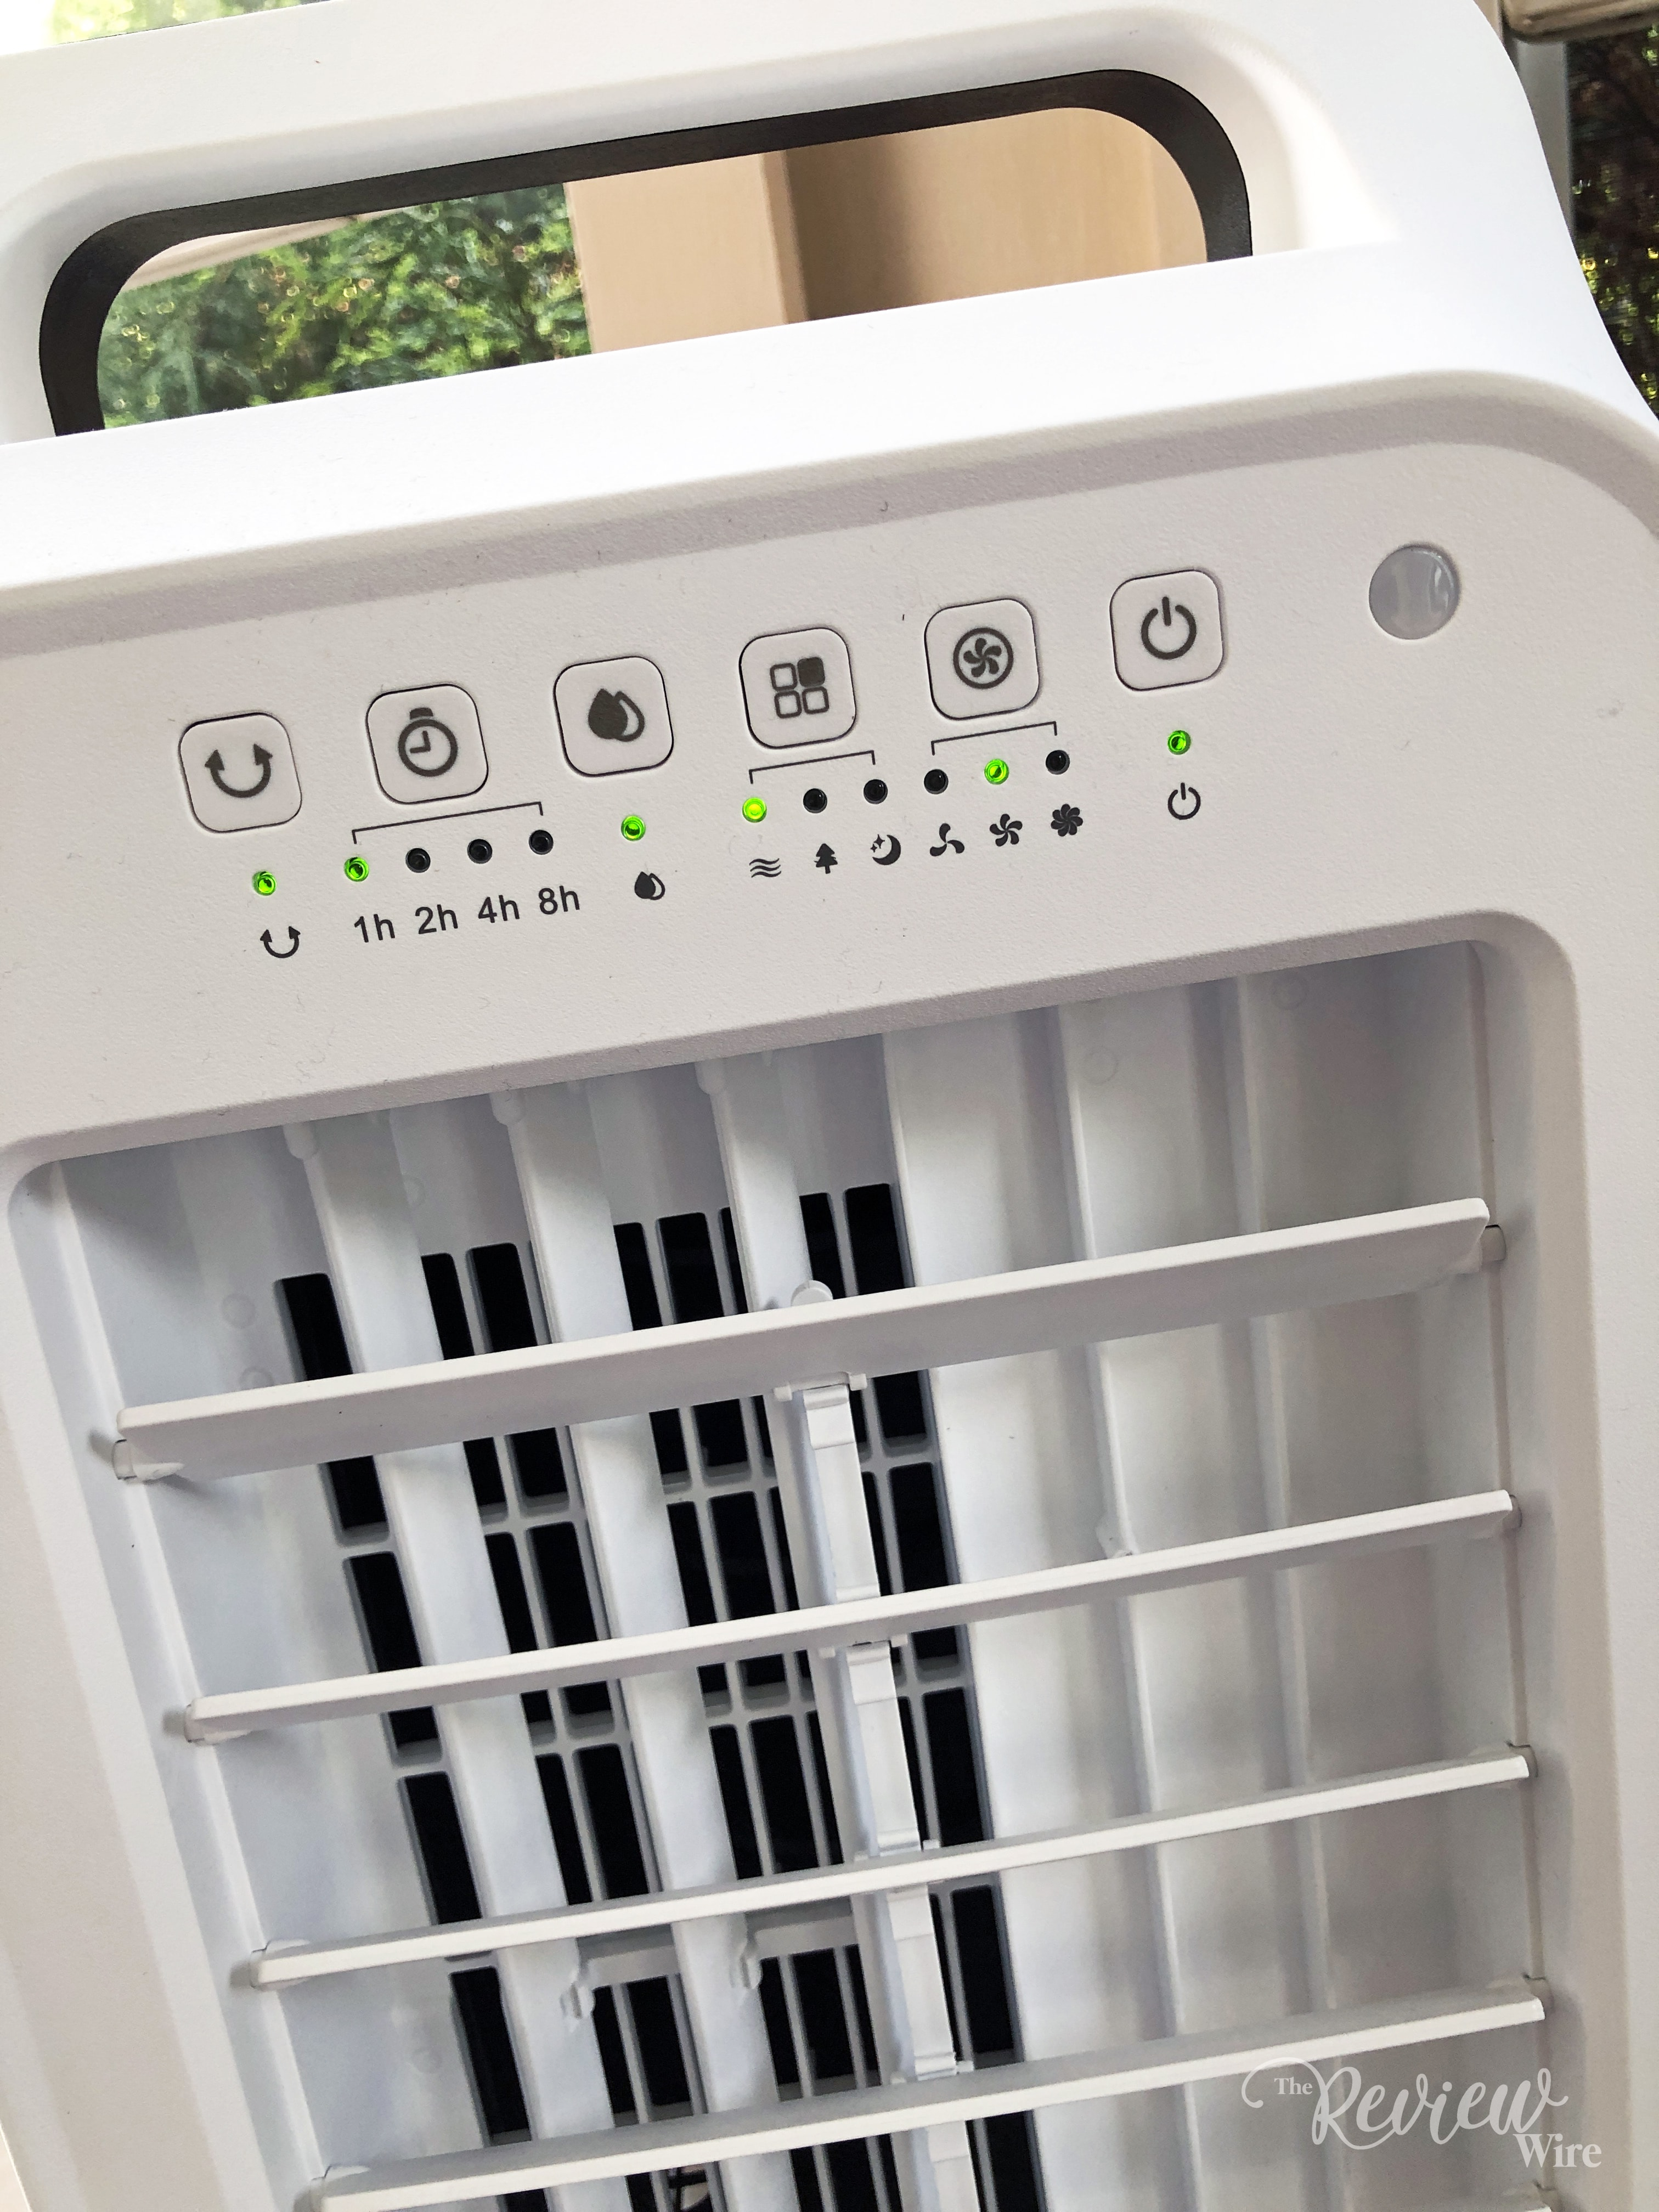 The Review Wire - Water Tank in the Frigidaire 2-in-1 Personal Evaporative Air Cooler and Fan